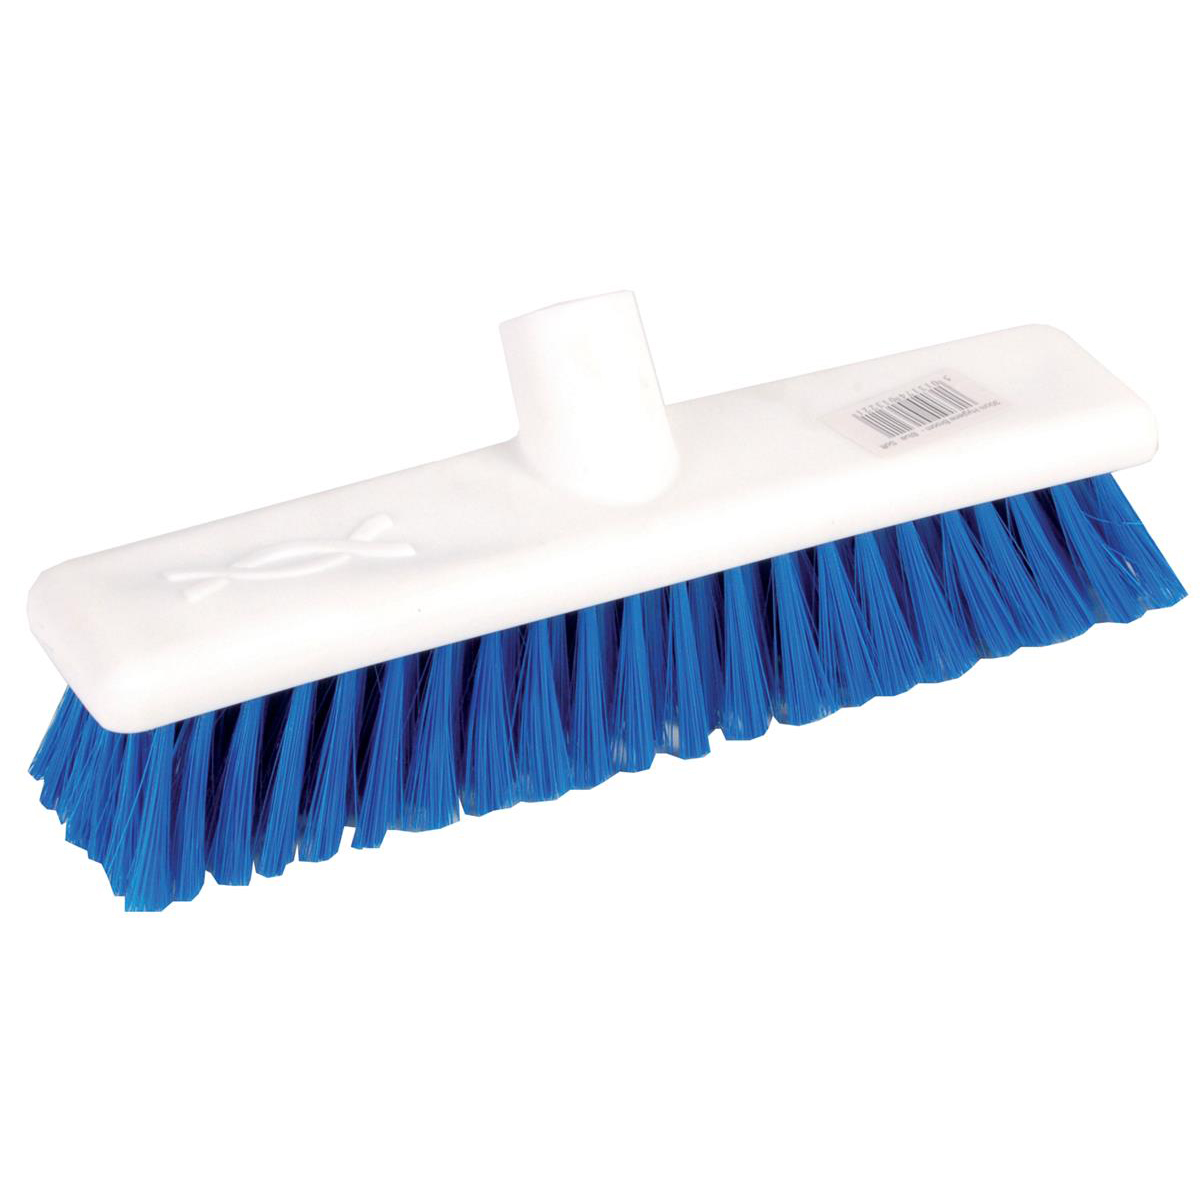 Robert Scott & Sons Abbey Hygiene Broom 12inch Washable Soft Broom Head Blue Ref 102910BLUE